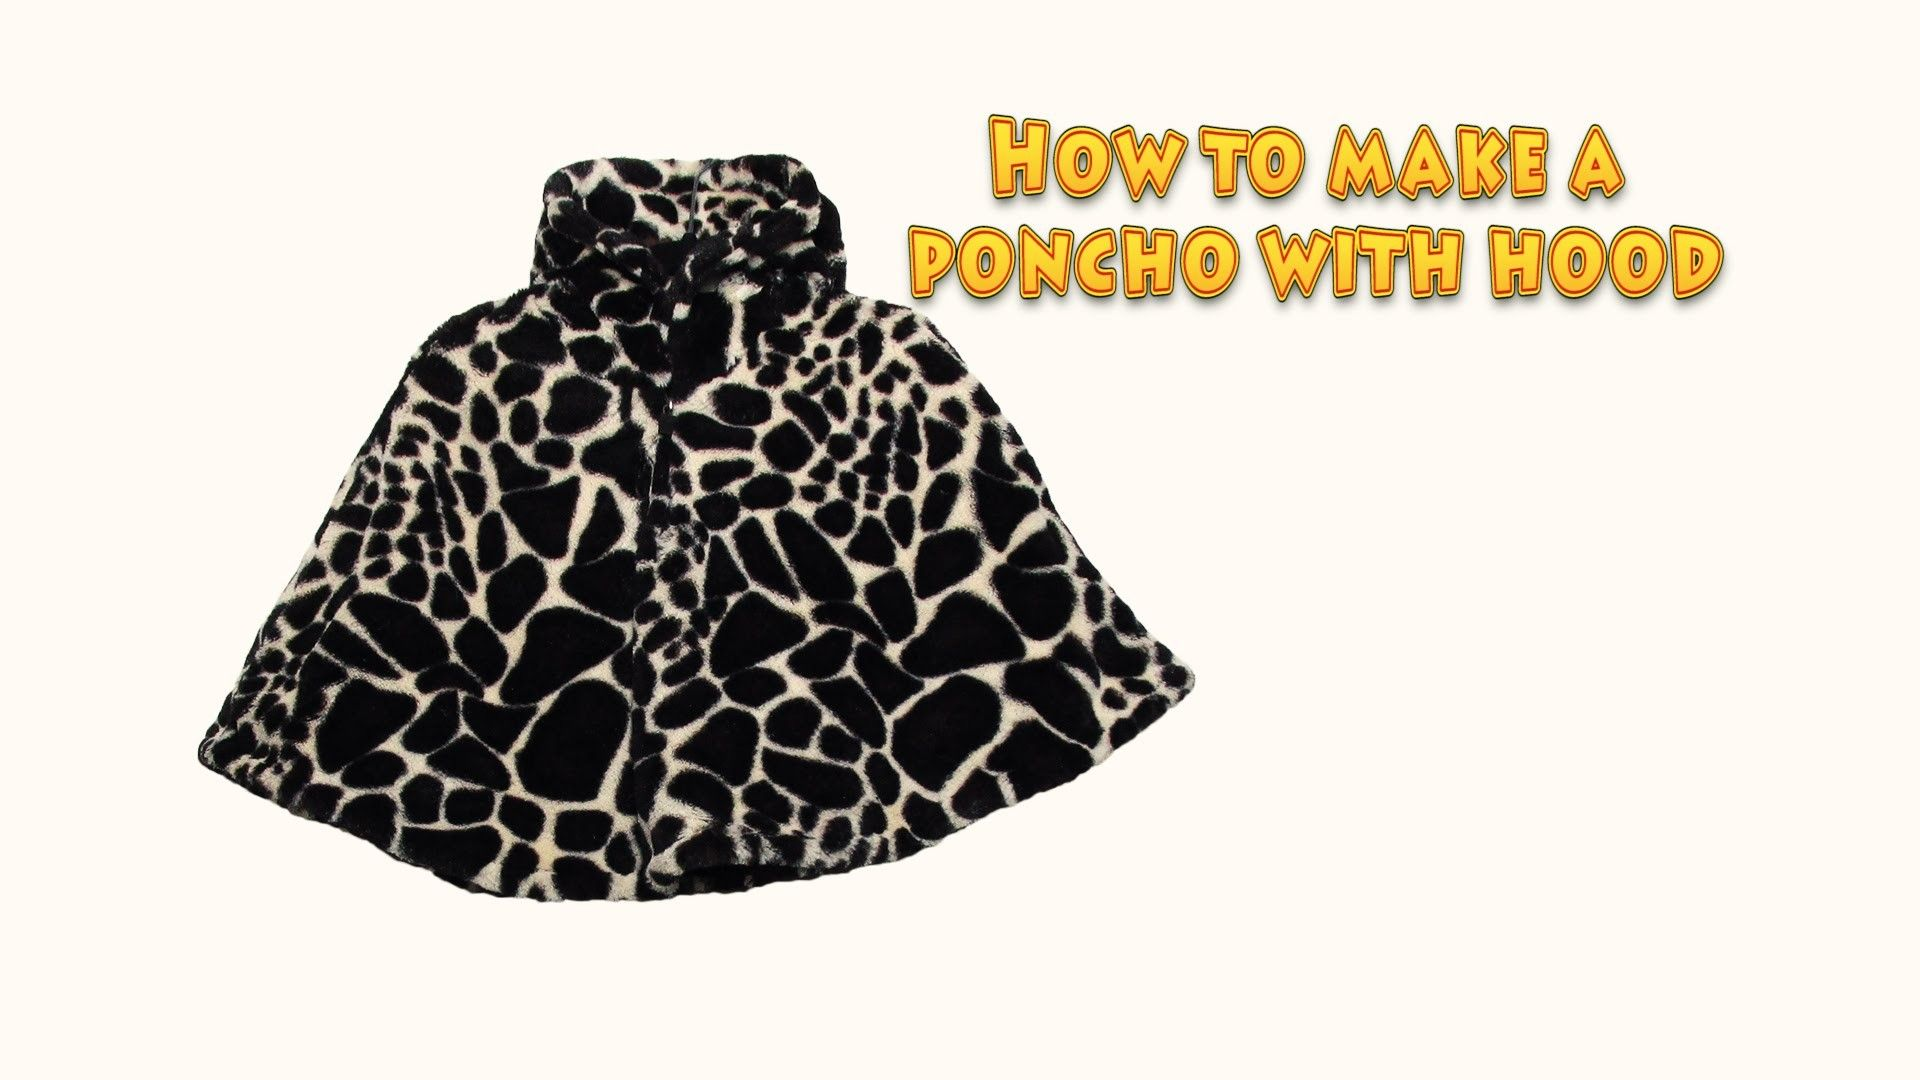 How to make a poncho with hood - DIY sewing project - #26